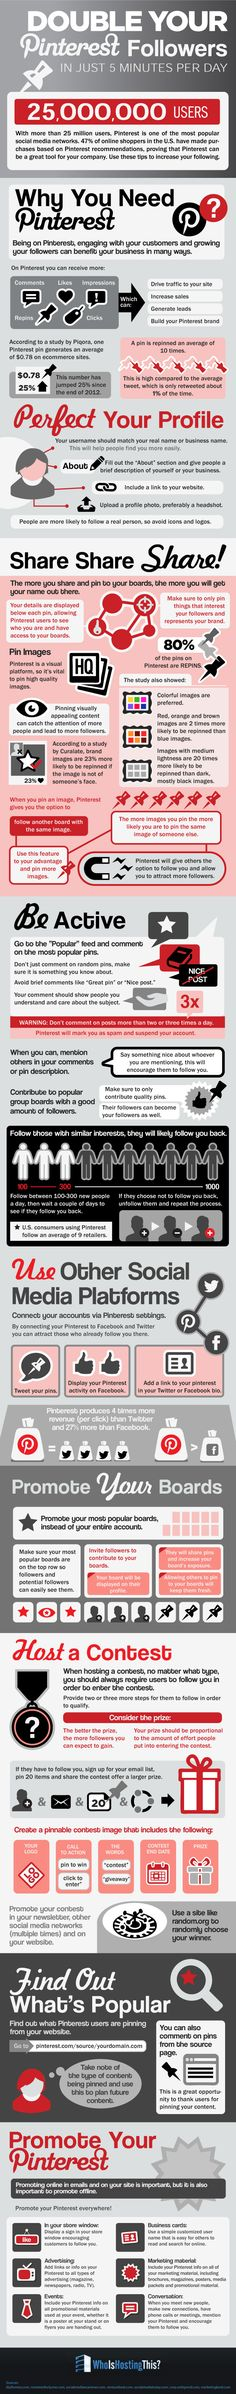 Double Pinterest Followers Organically In Just Five Minutes A Day [Infographic] - some good tips in here, peeps! #marketing #youtube #videos  #seo http://hdstartup.com #hdstartup